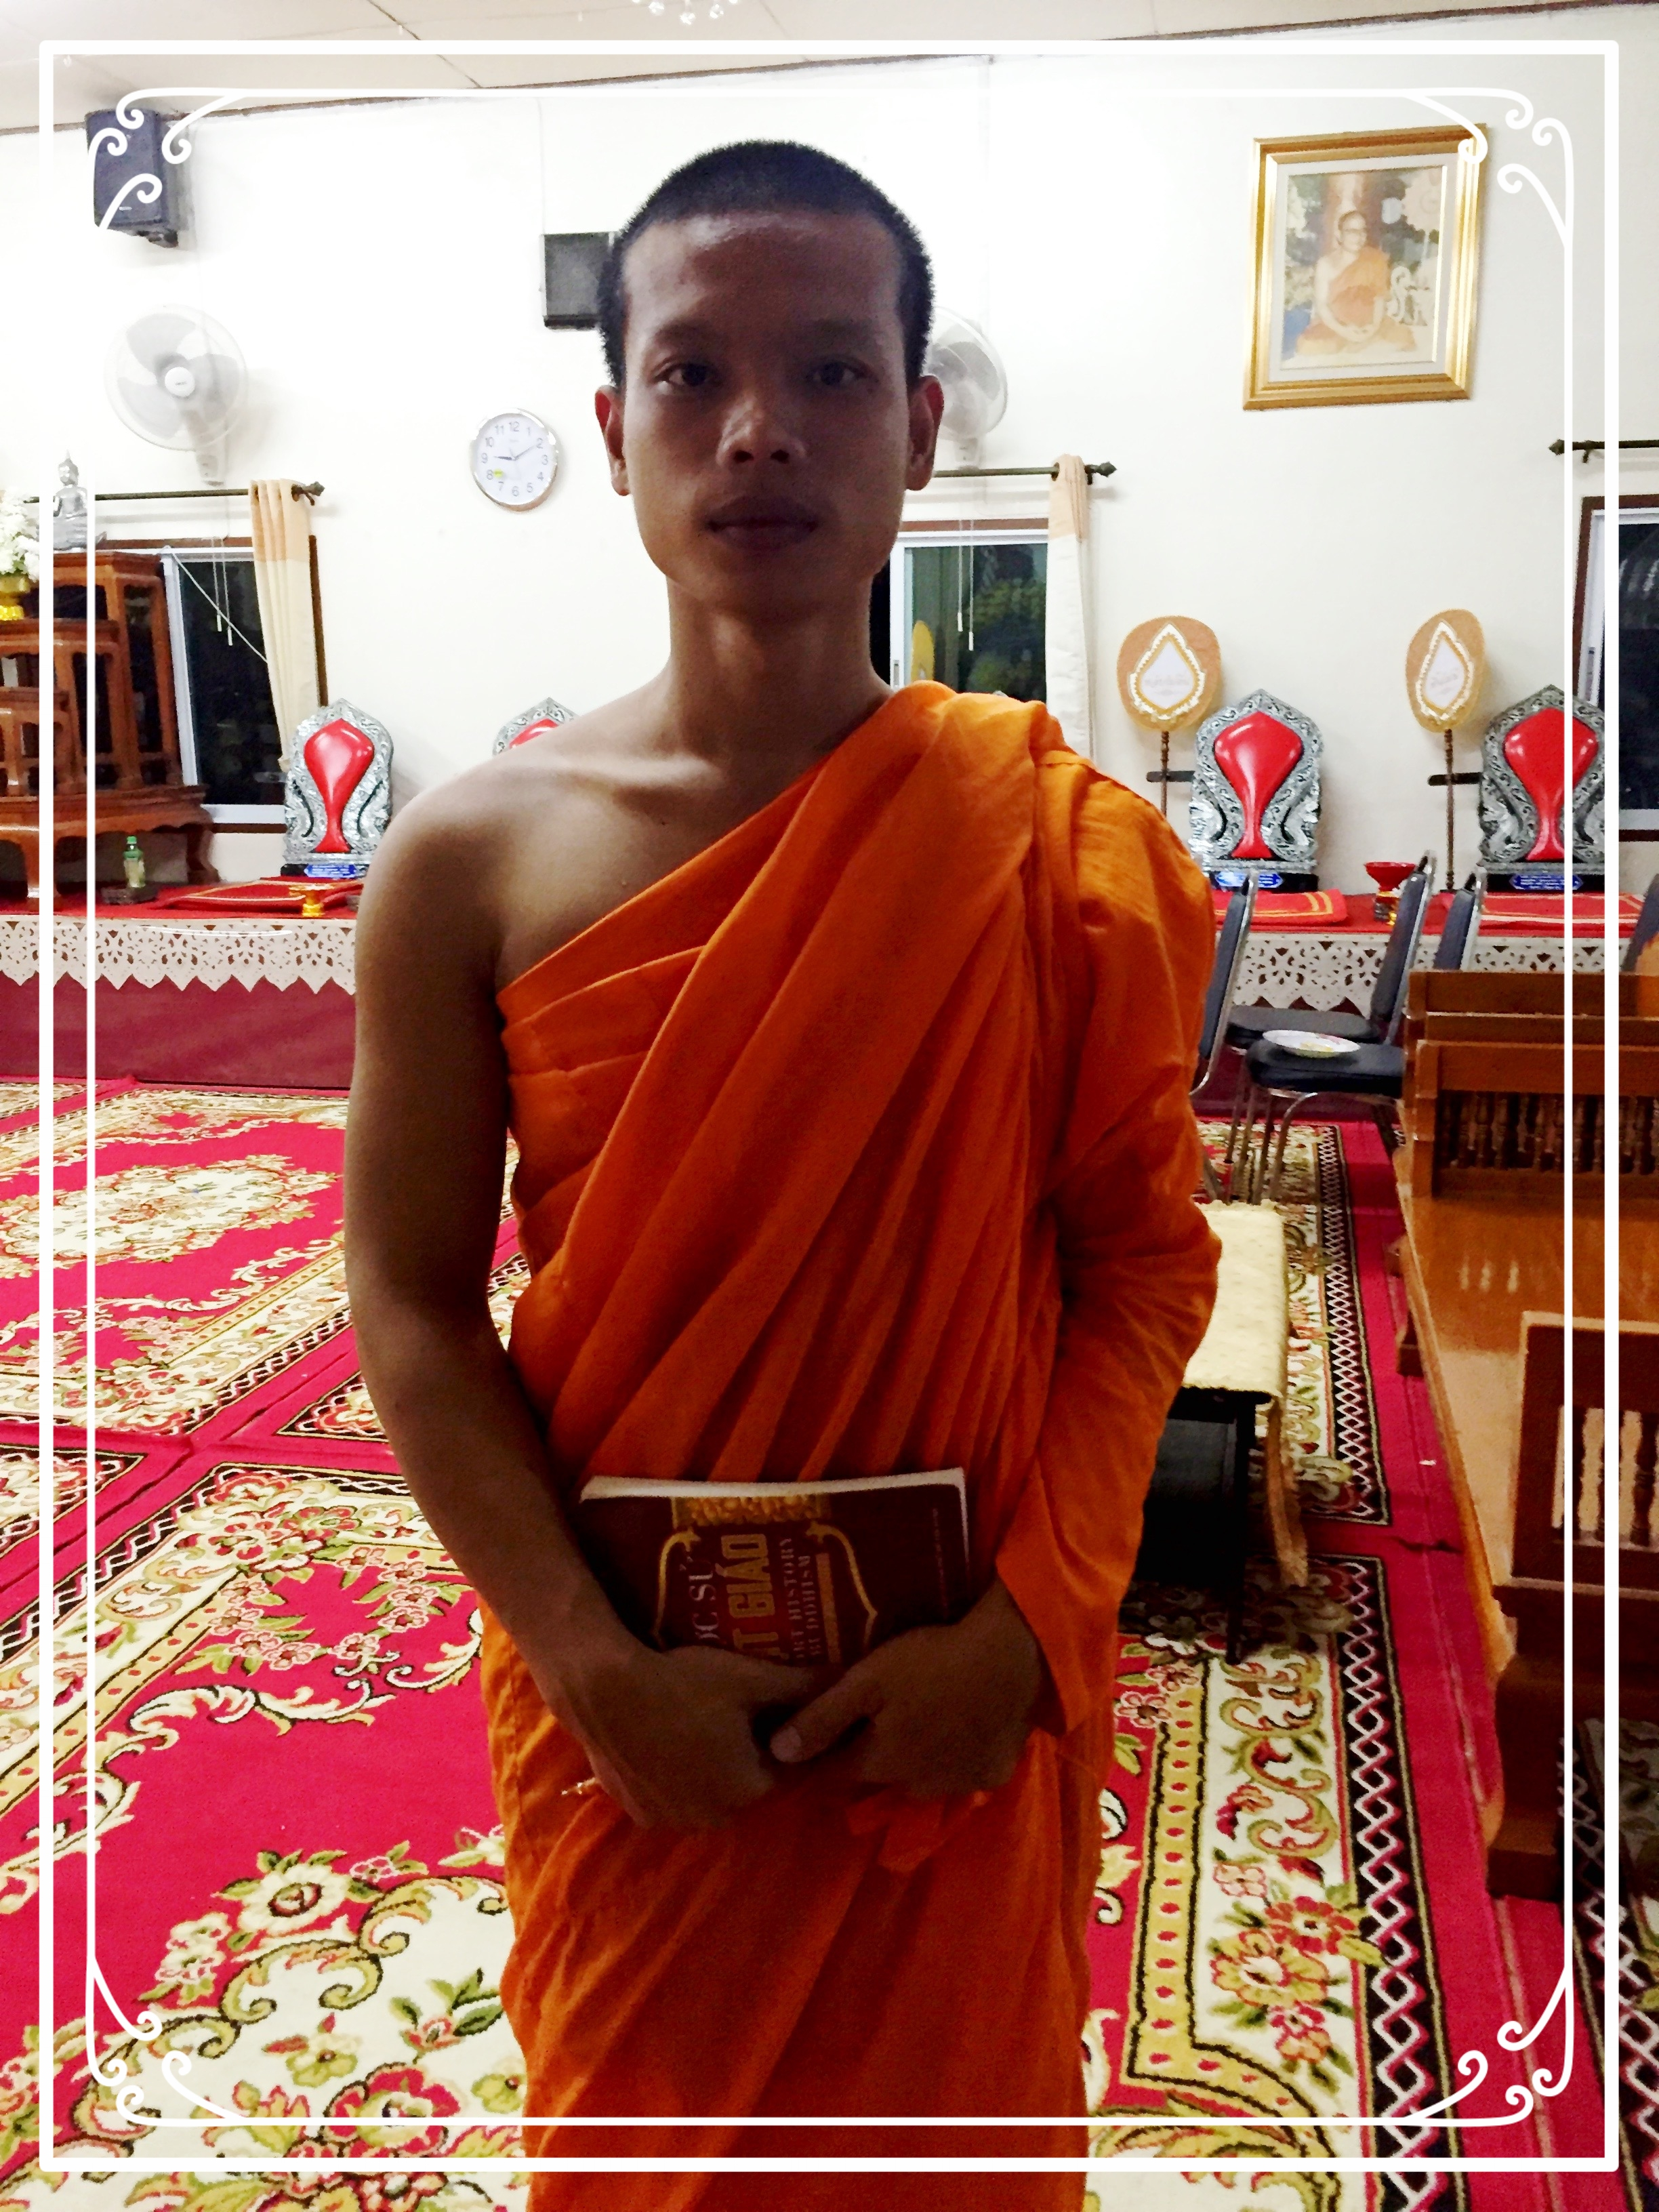 My first stop was Chiang Mai -